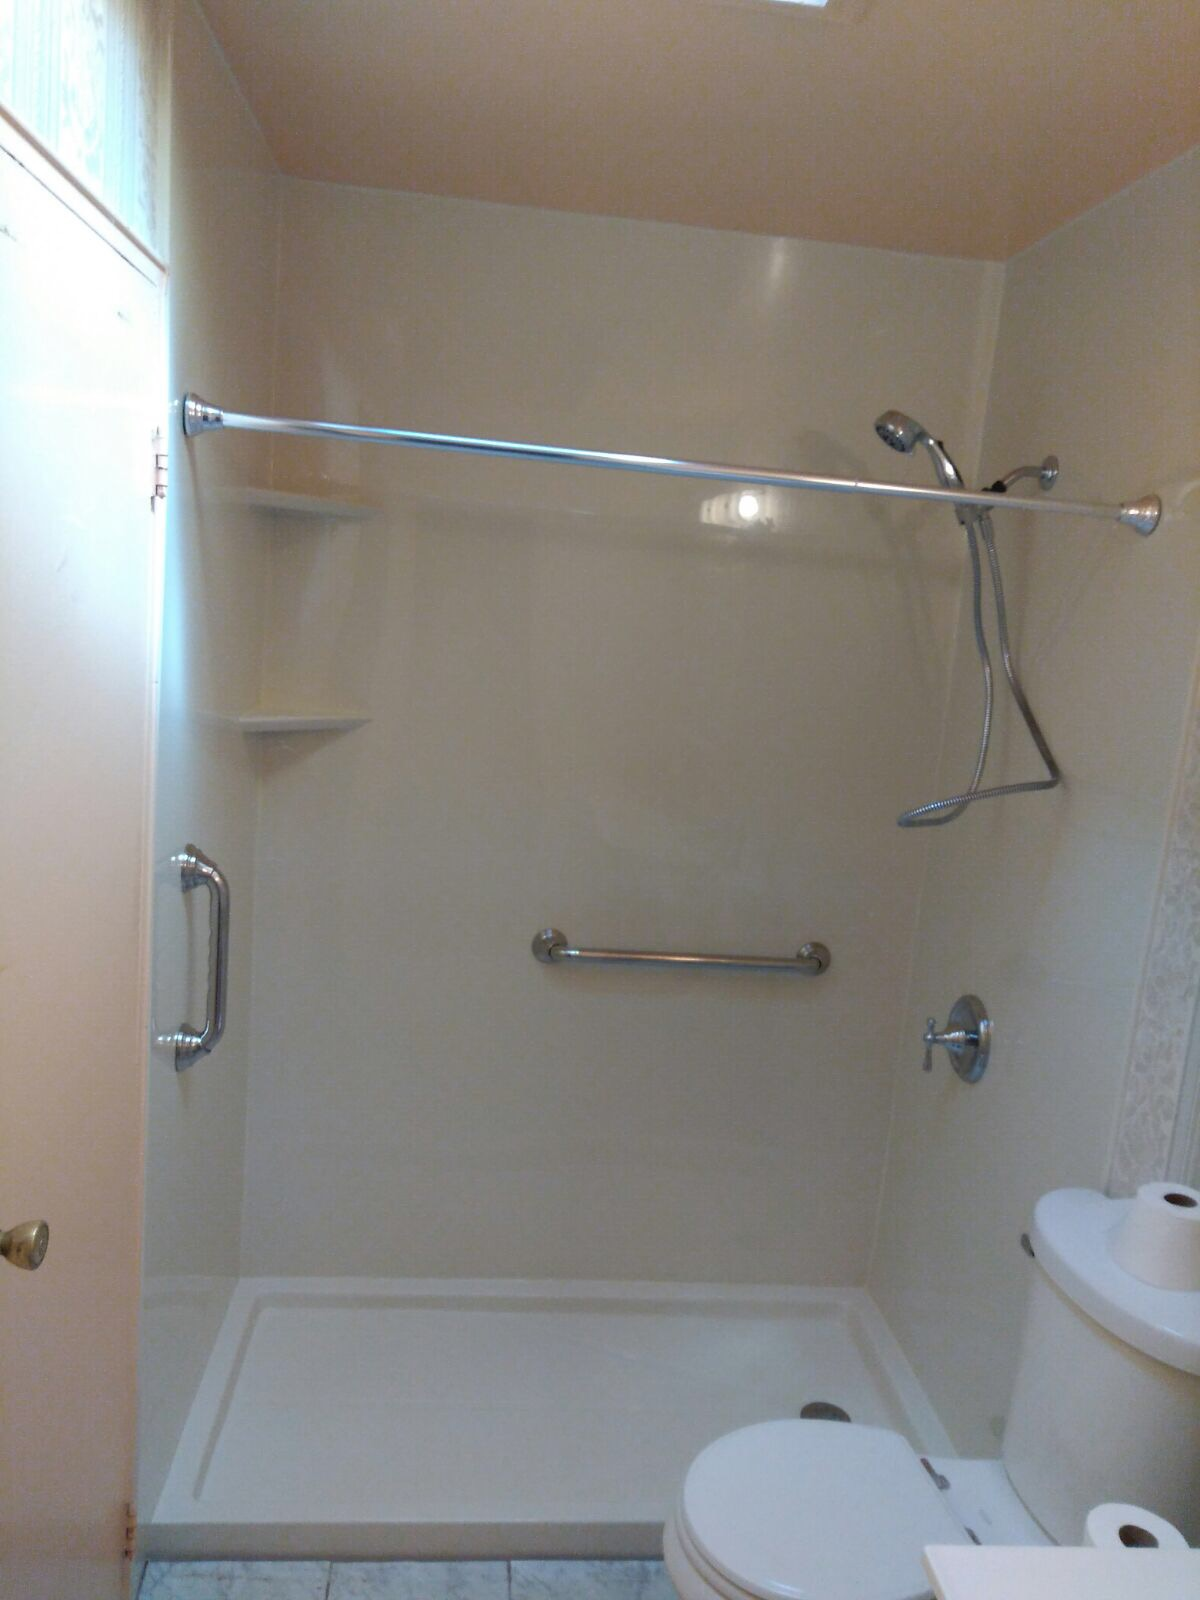 kitchen sa to shower conversion convert homestyle before palmetto after bath tub